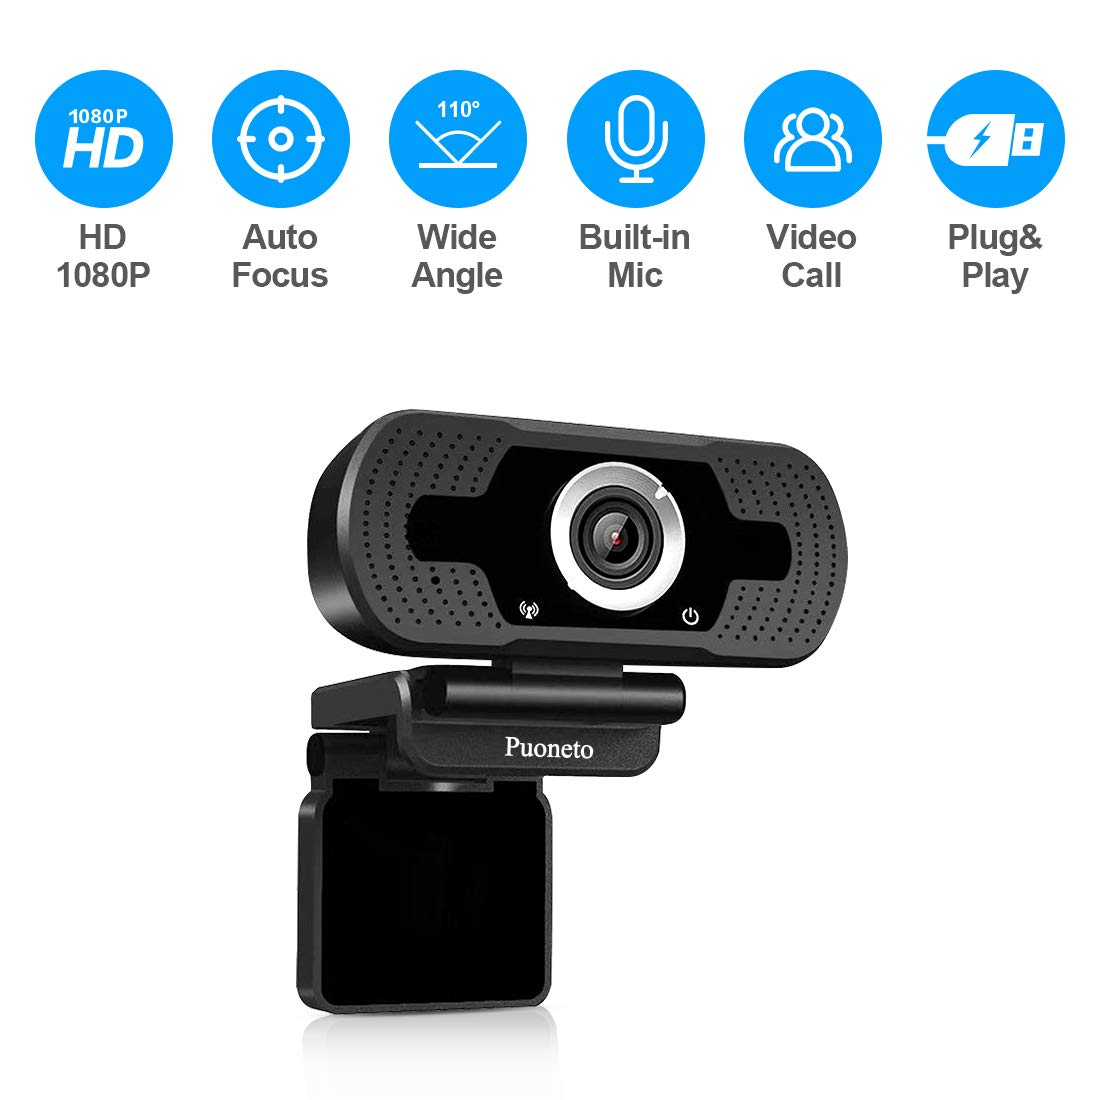 Webcam with Microphone, HD 1080P Computer USB Webcams for Desktop/Laptop External PC Camera Streaming Webcam for Gaming/Video Calling/Recording/Conferencing Supports Windows/Android/Linux System